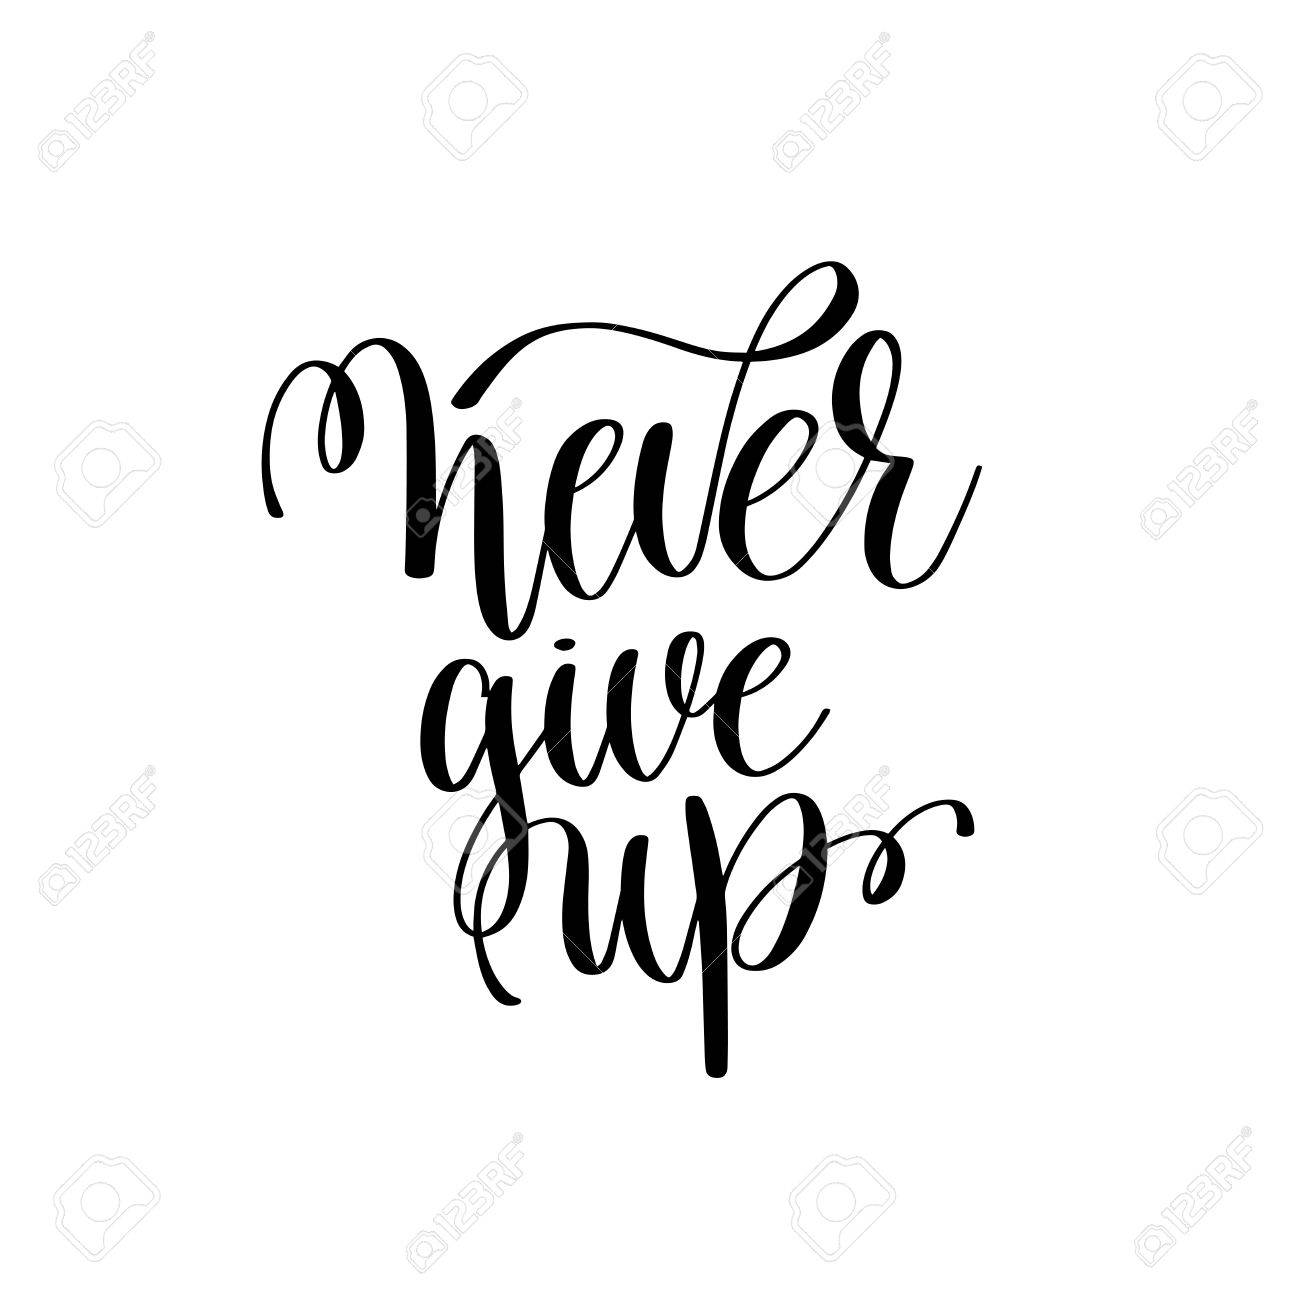 Never give up black and white ink lettering positive quote stock vector 81629379